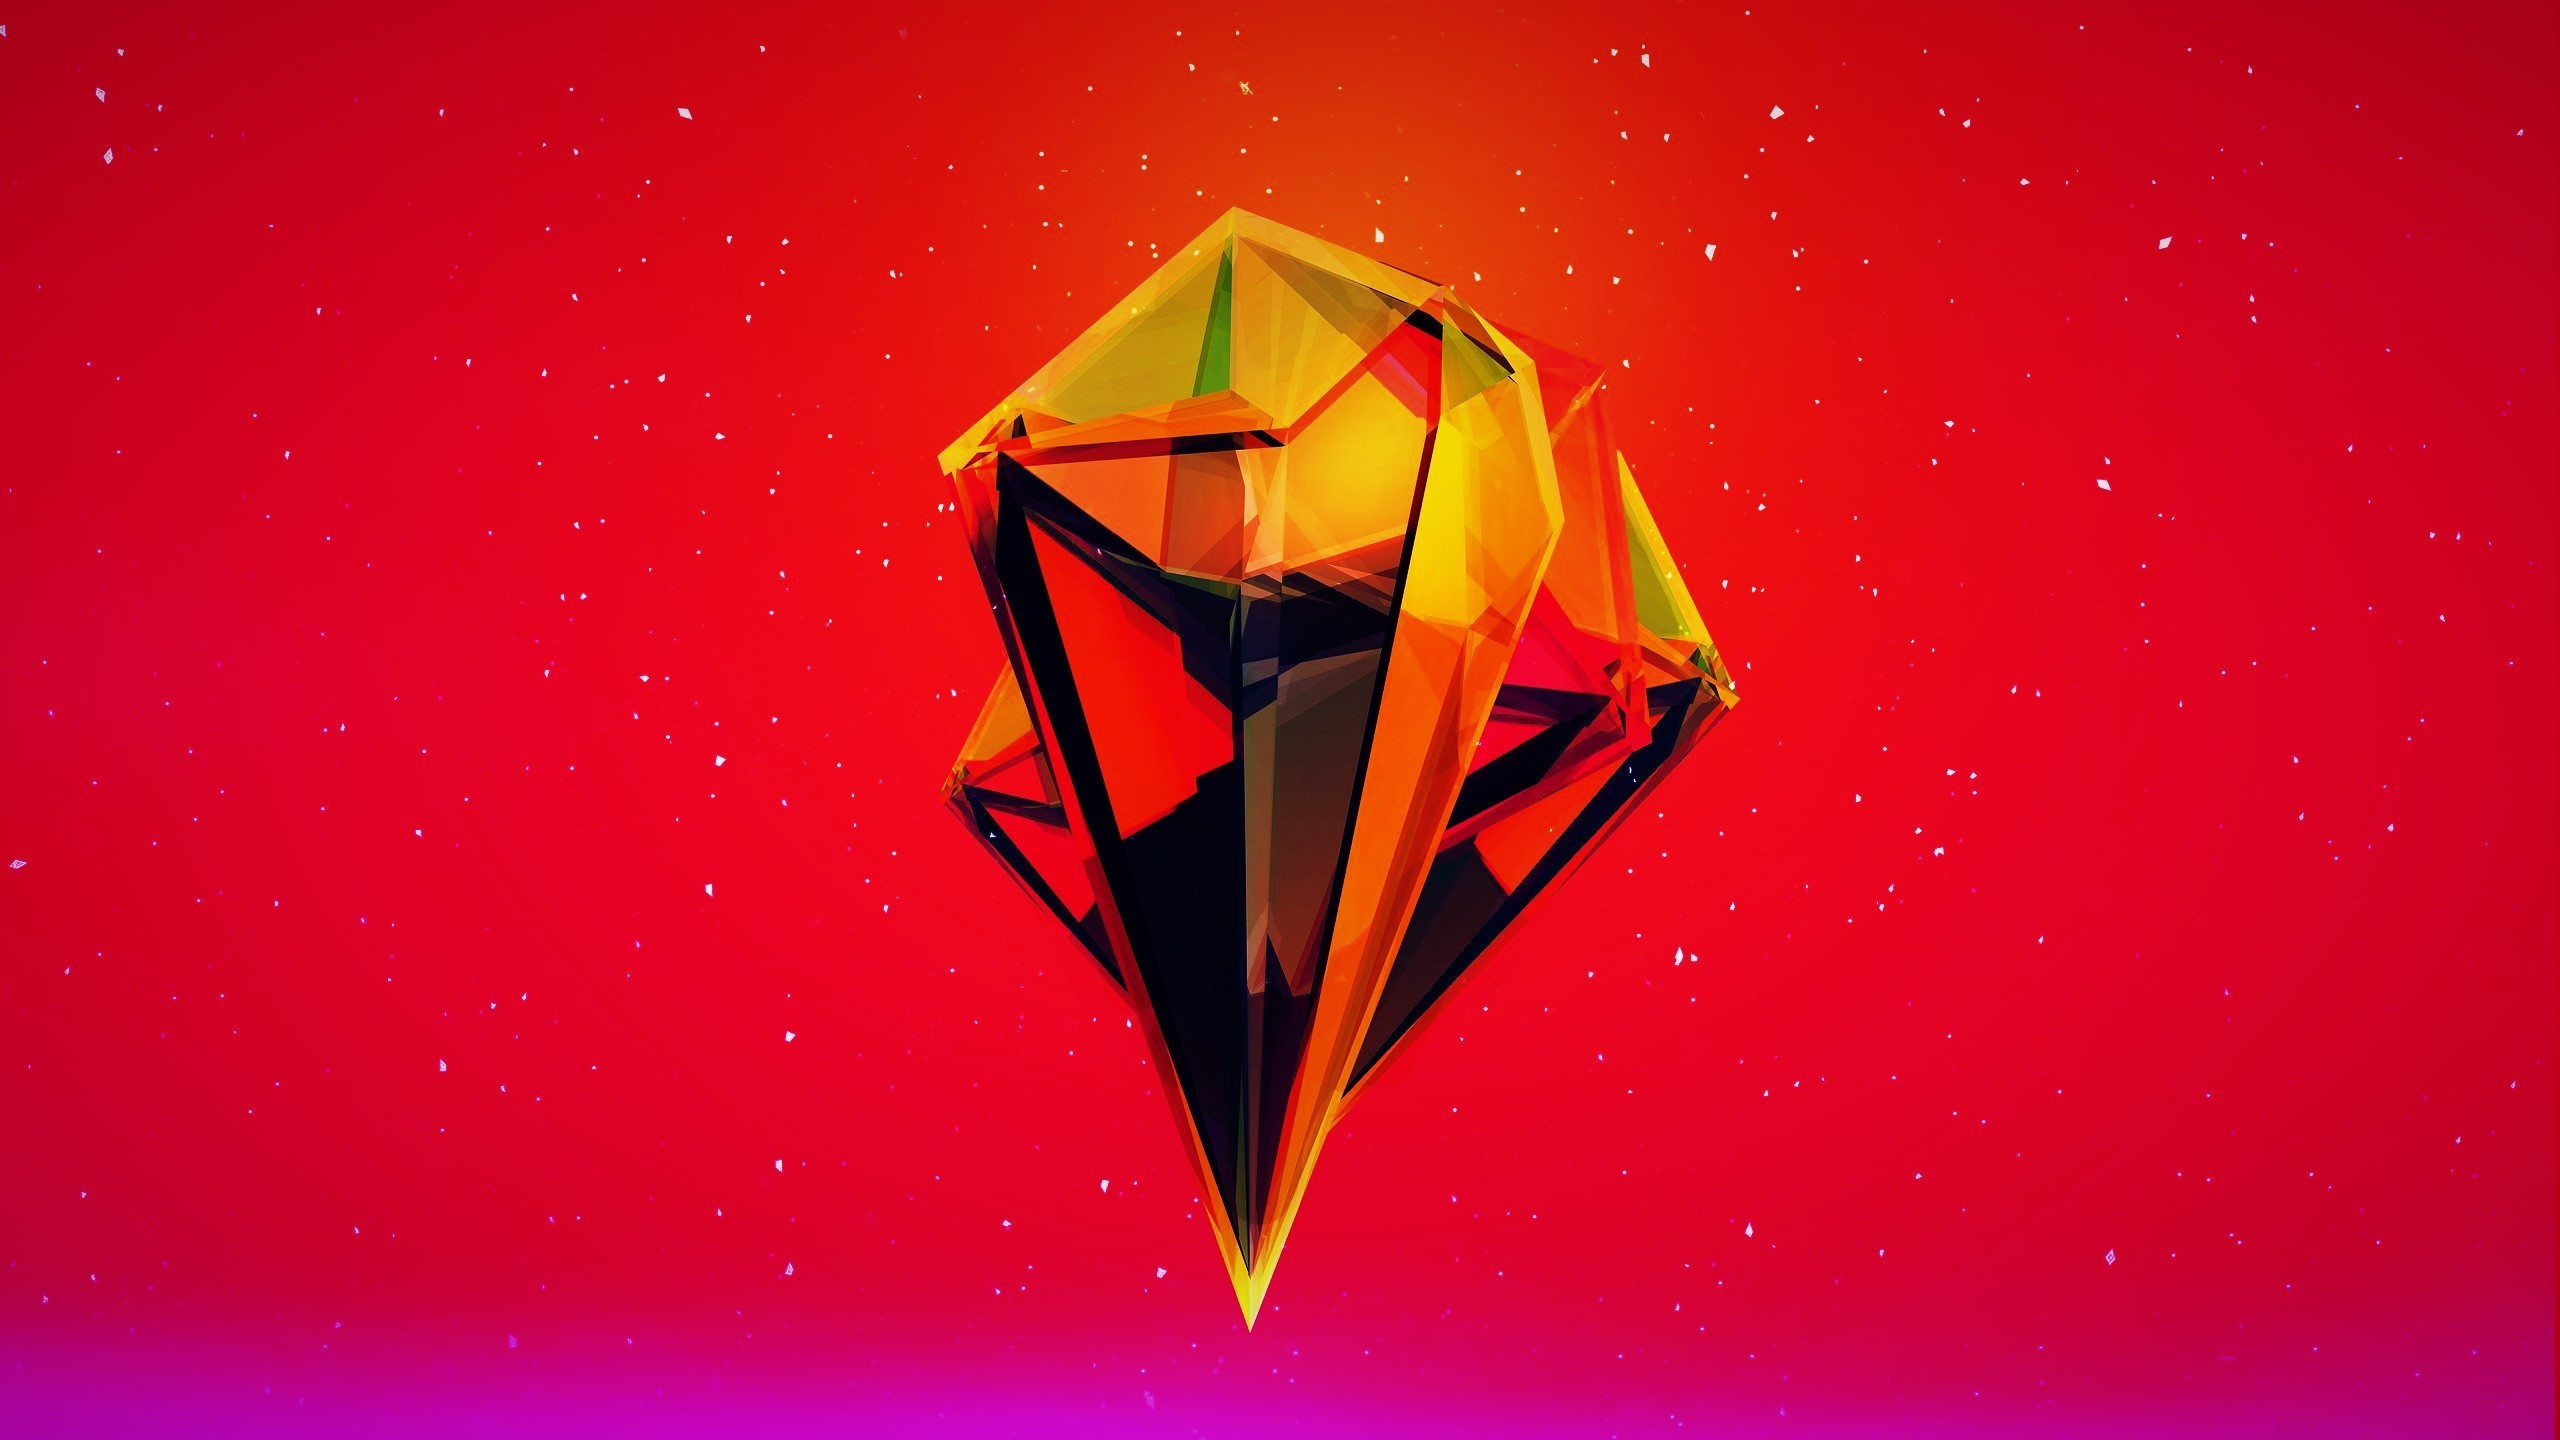 Justin Maller, Red, Orange, Abstract, 3D, Pink, Purple Wallpapers HD /  Desktop and Mobile Backgrounds